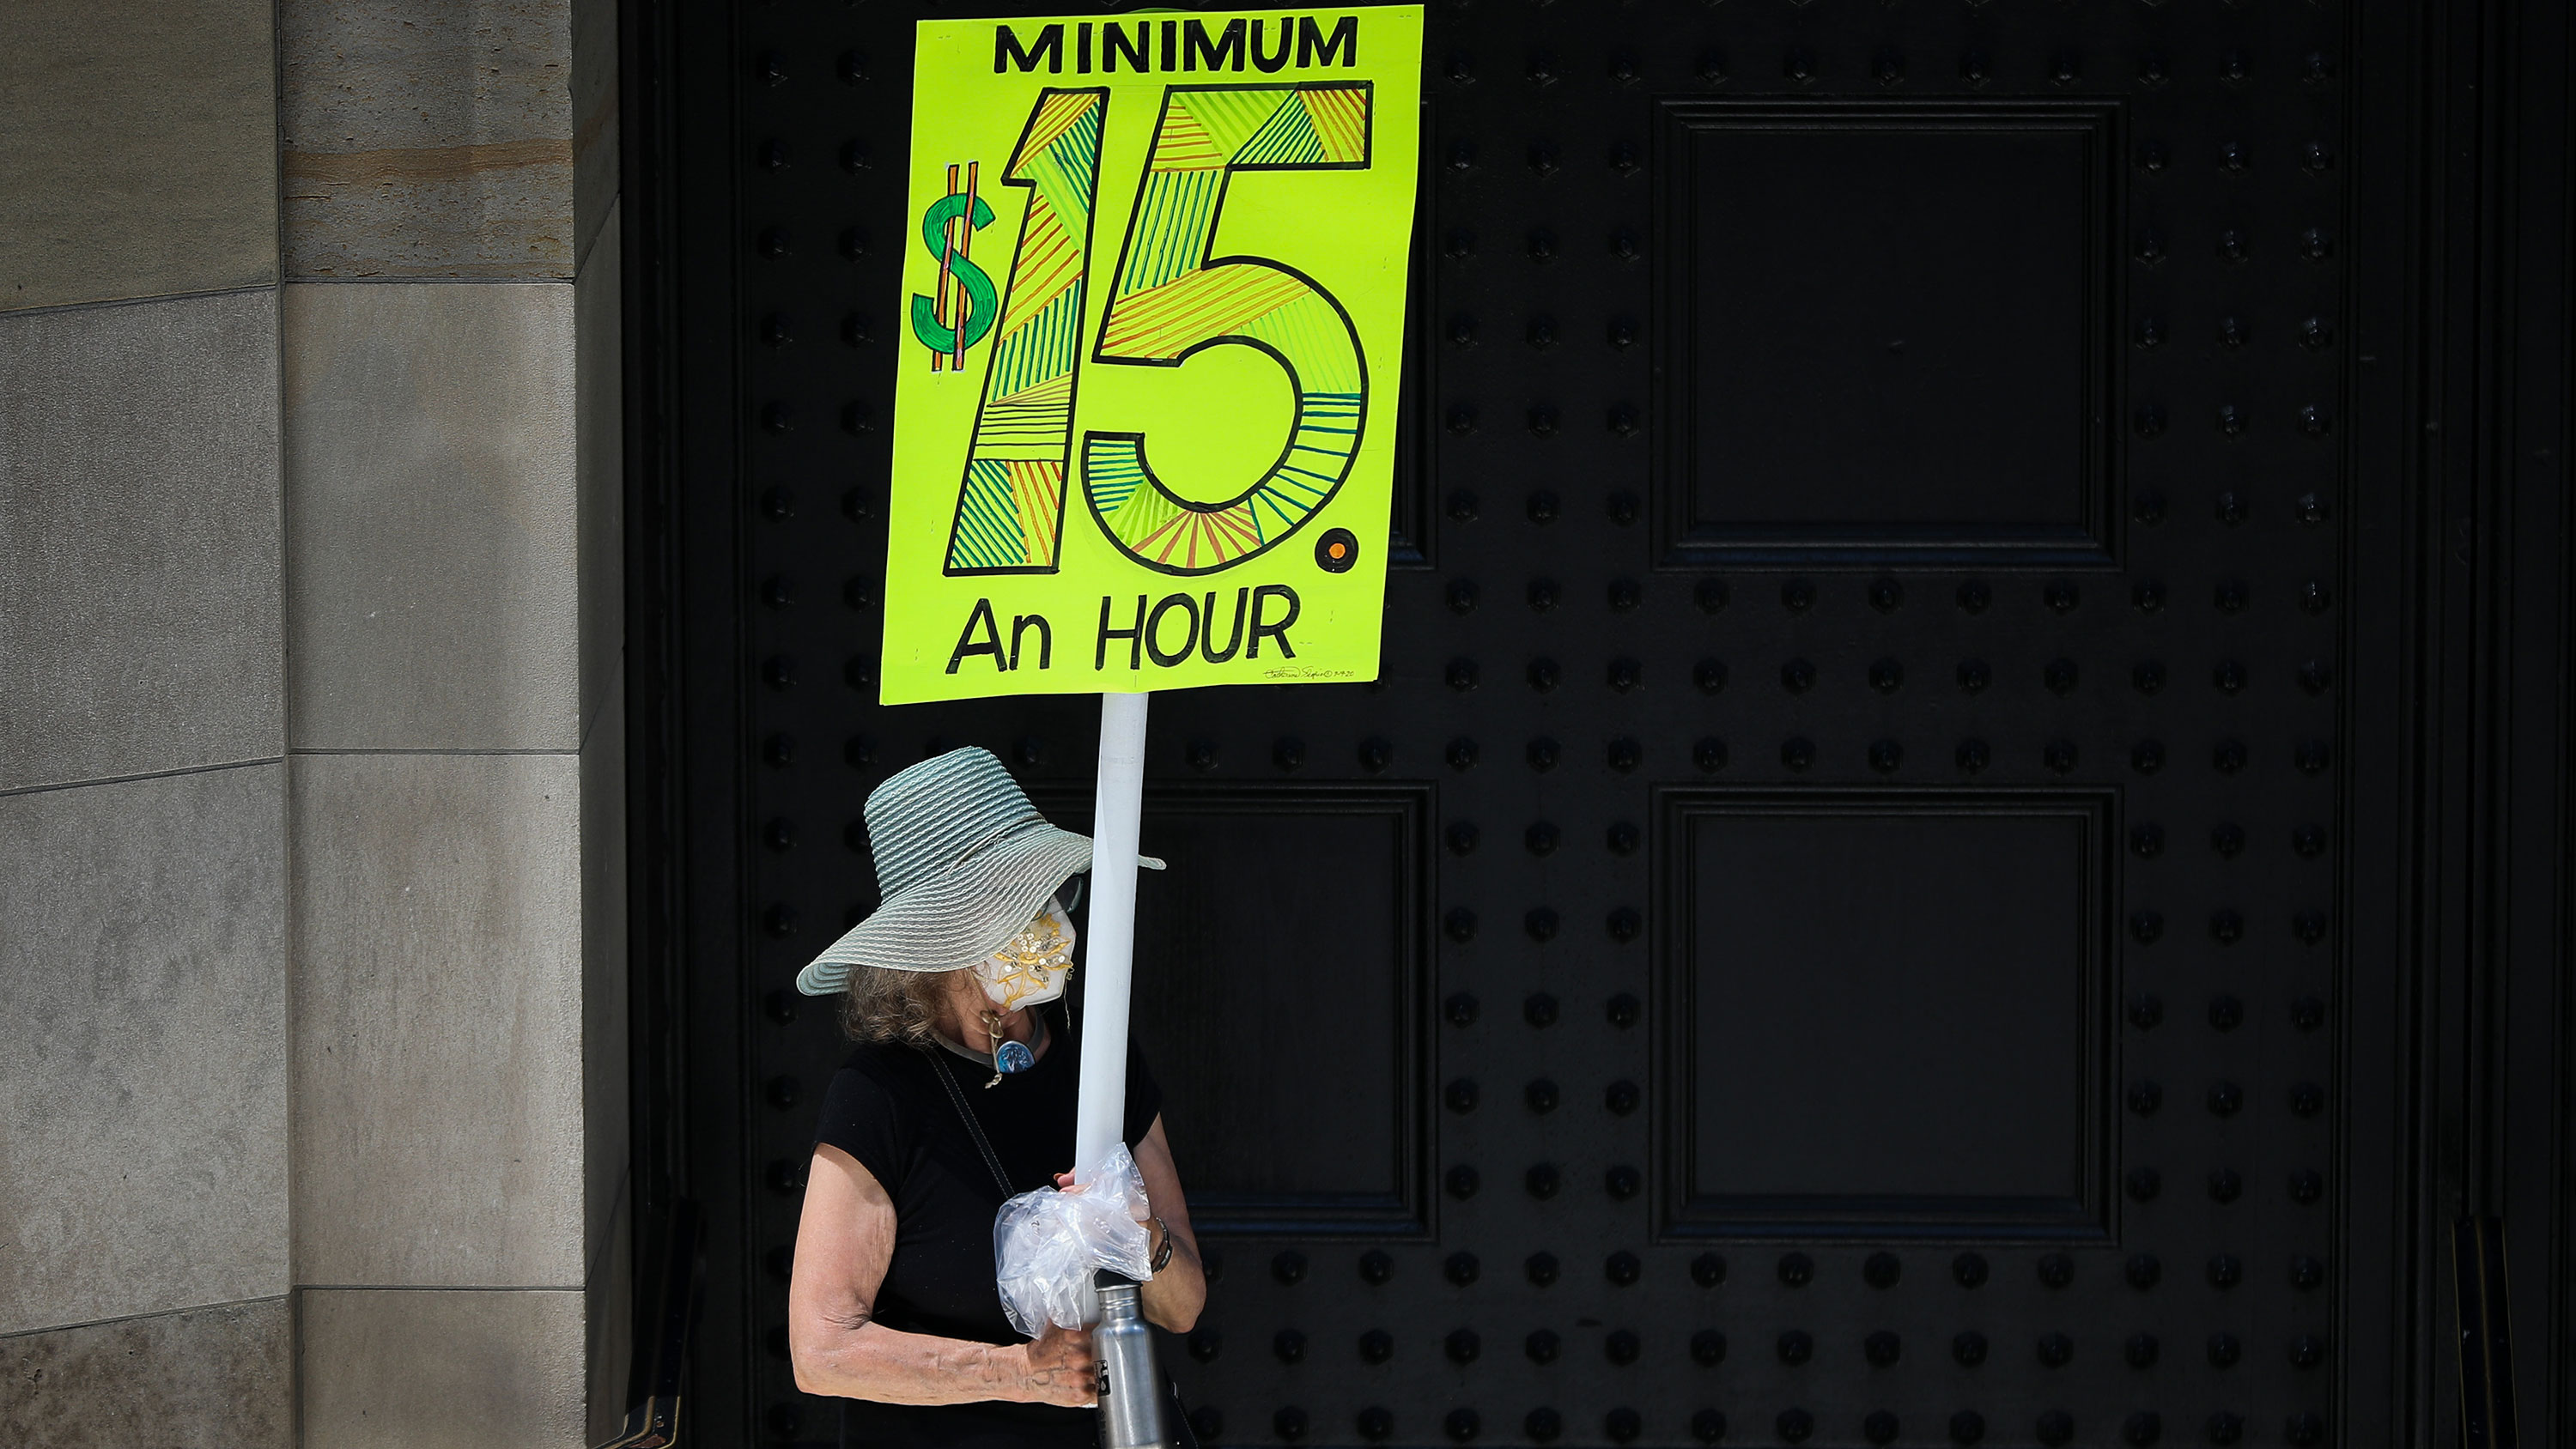 Democrats introduce bill to raise minimum wage to $15 by 2025